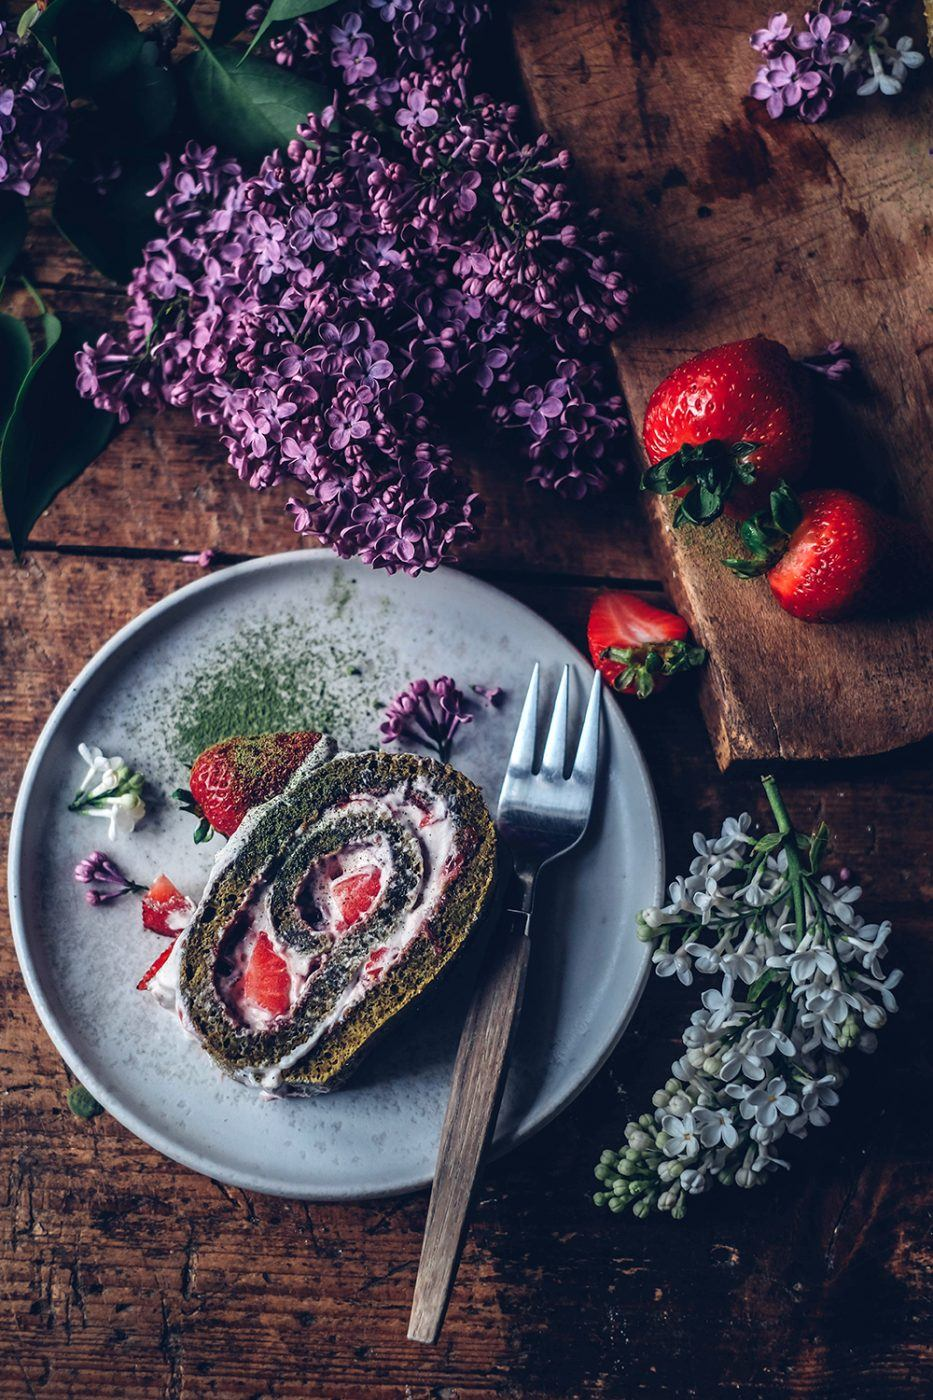 gluten-free matcha Swiss roll with strawberries